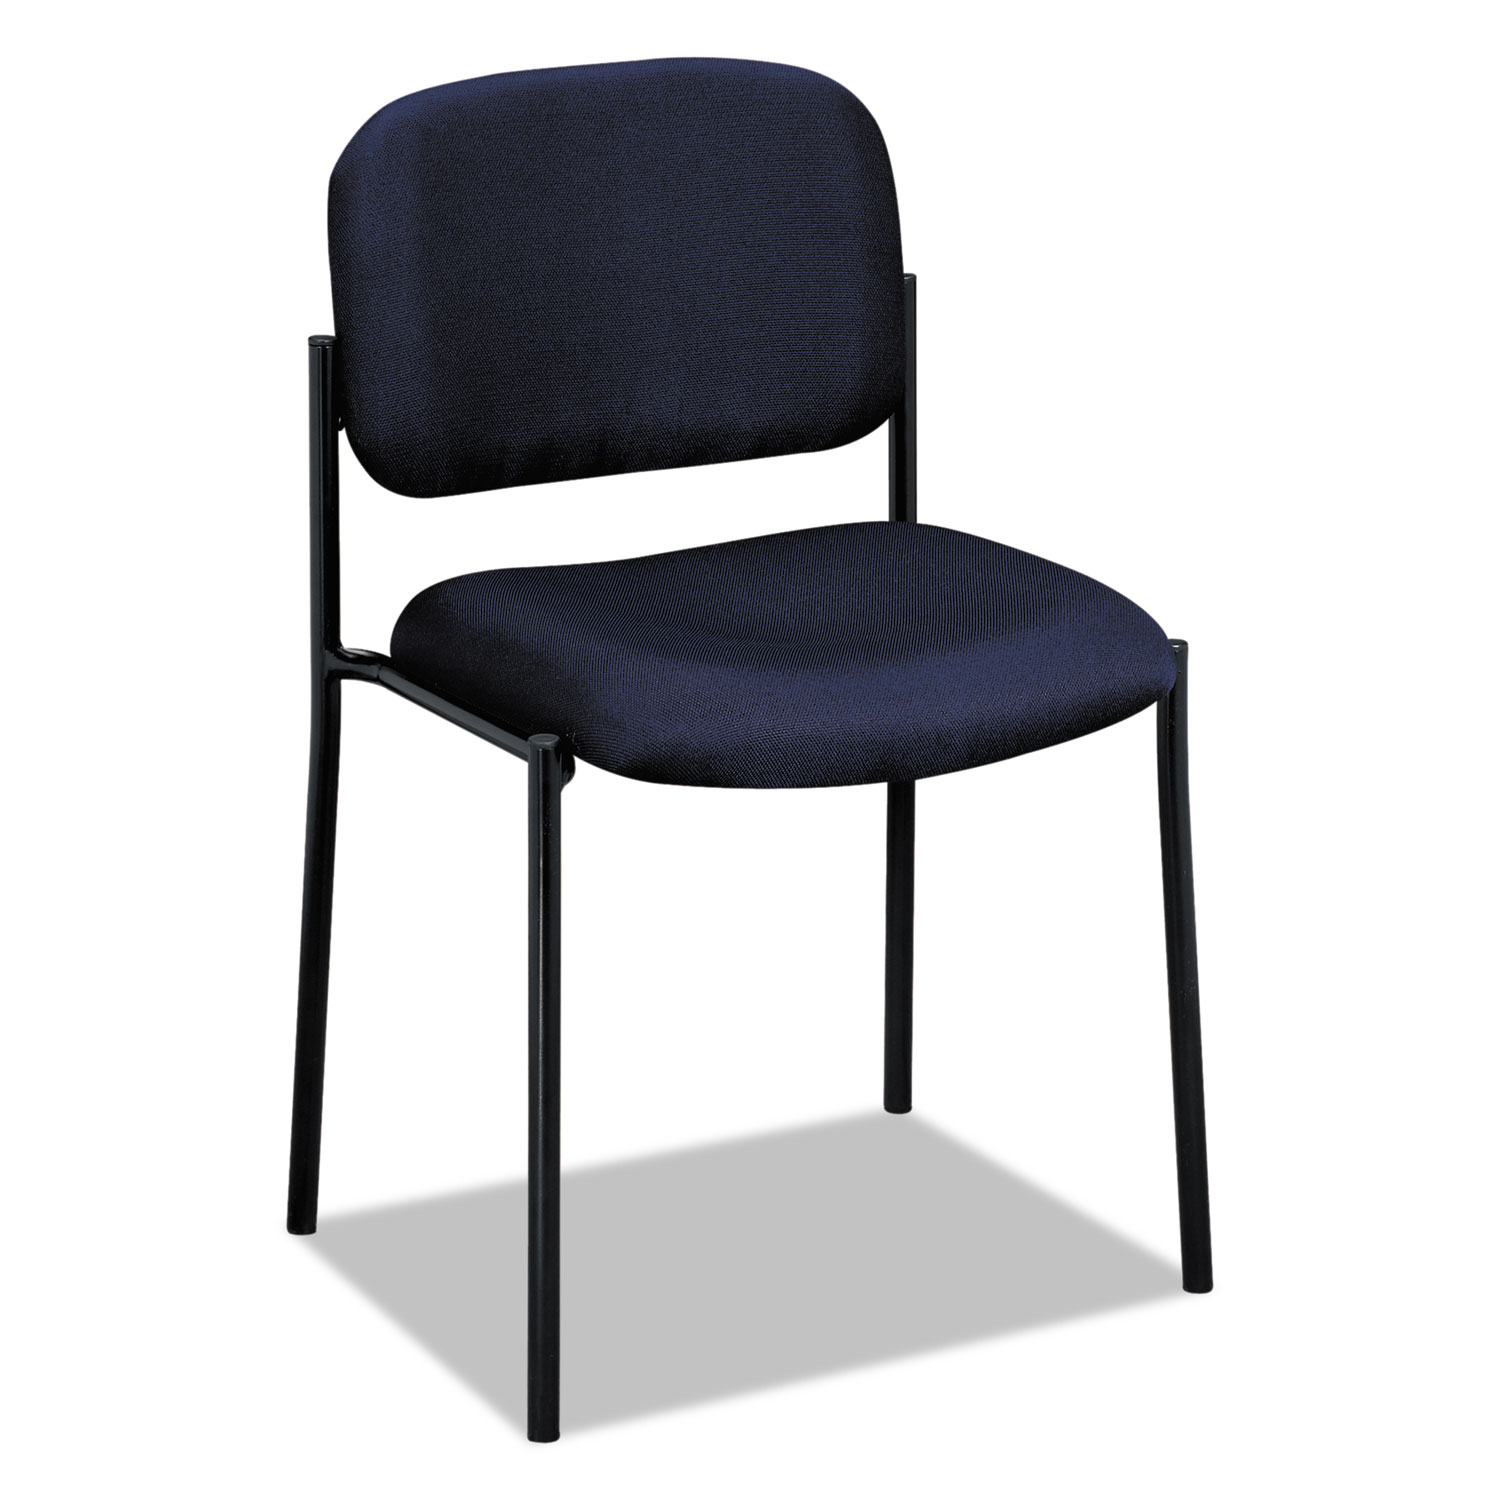 Vl606 Stacking Guest Chair Without Arms Navy Seat Navy Back